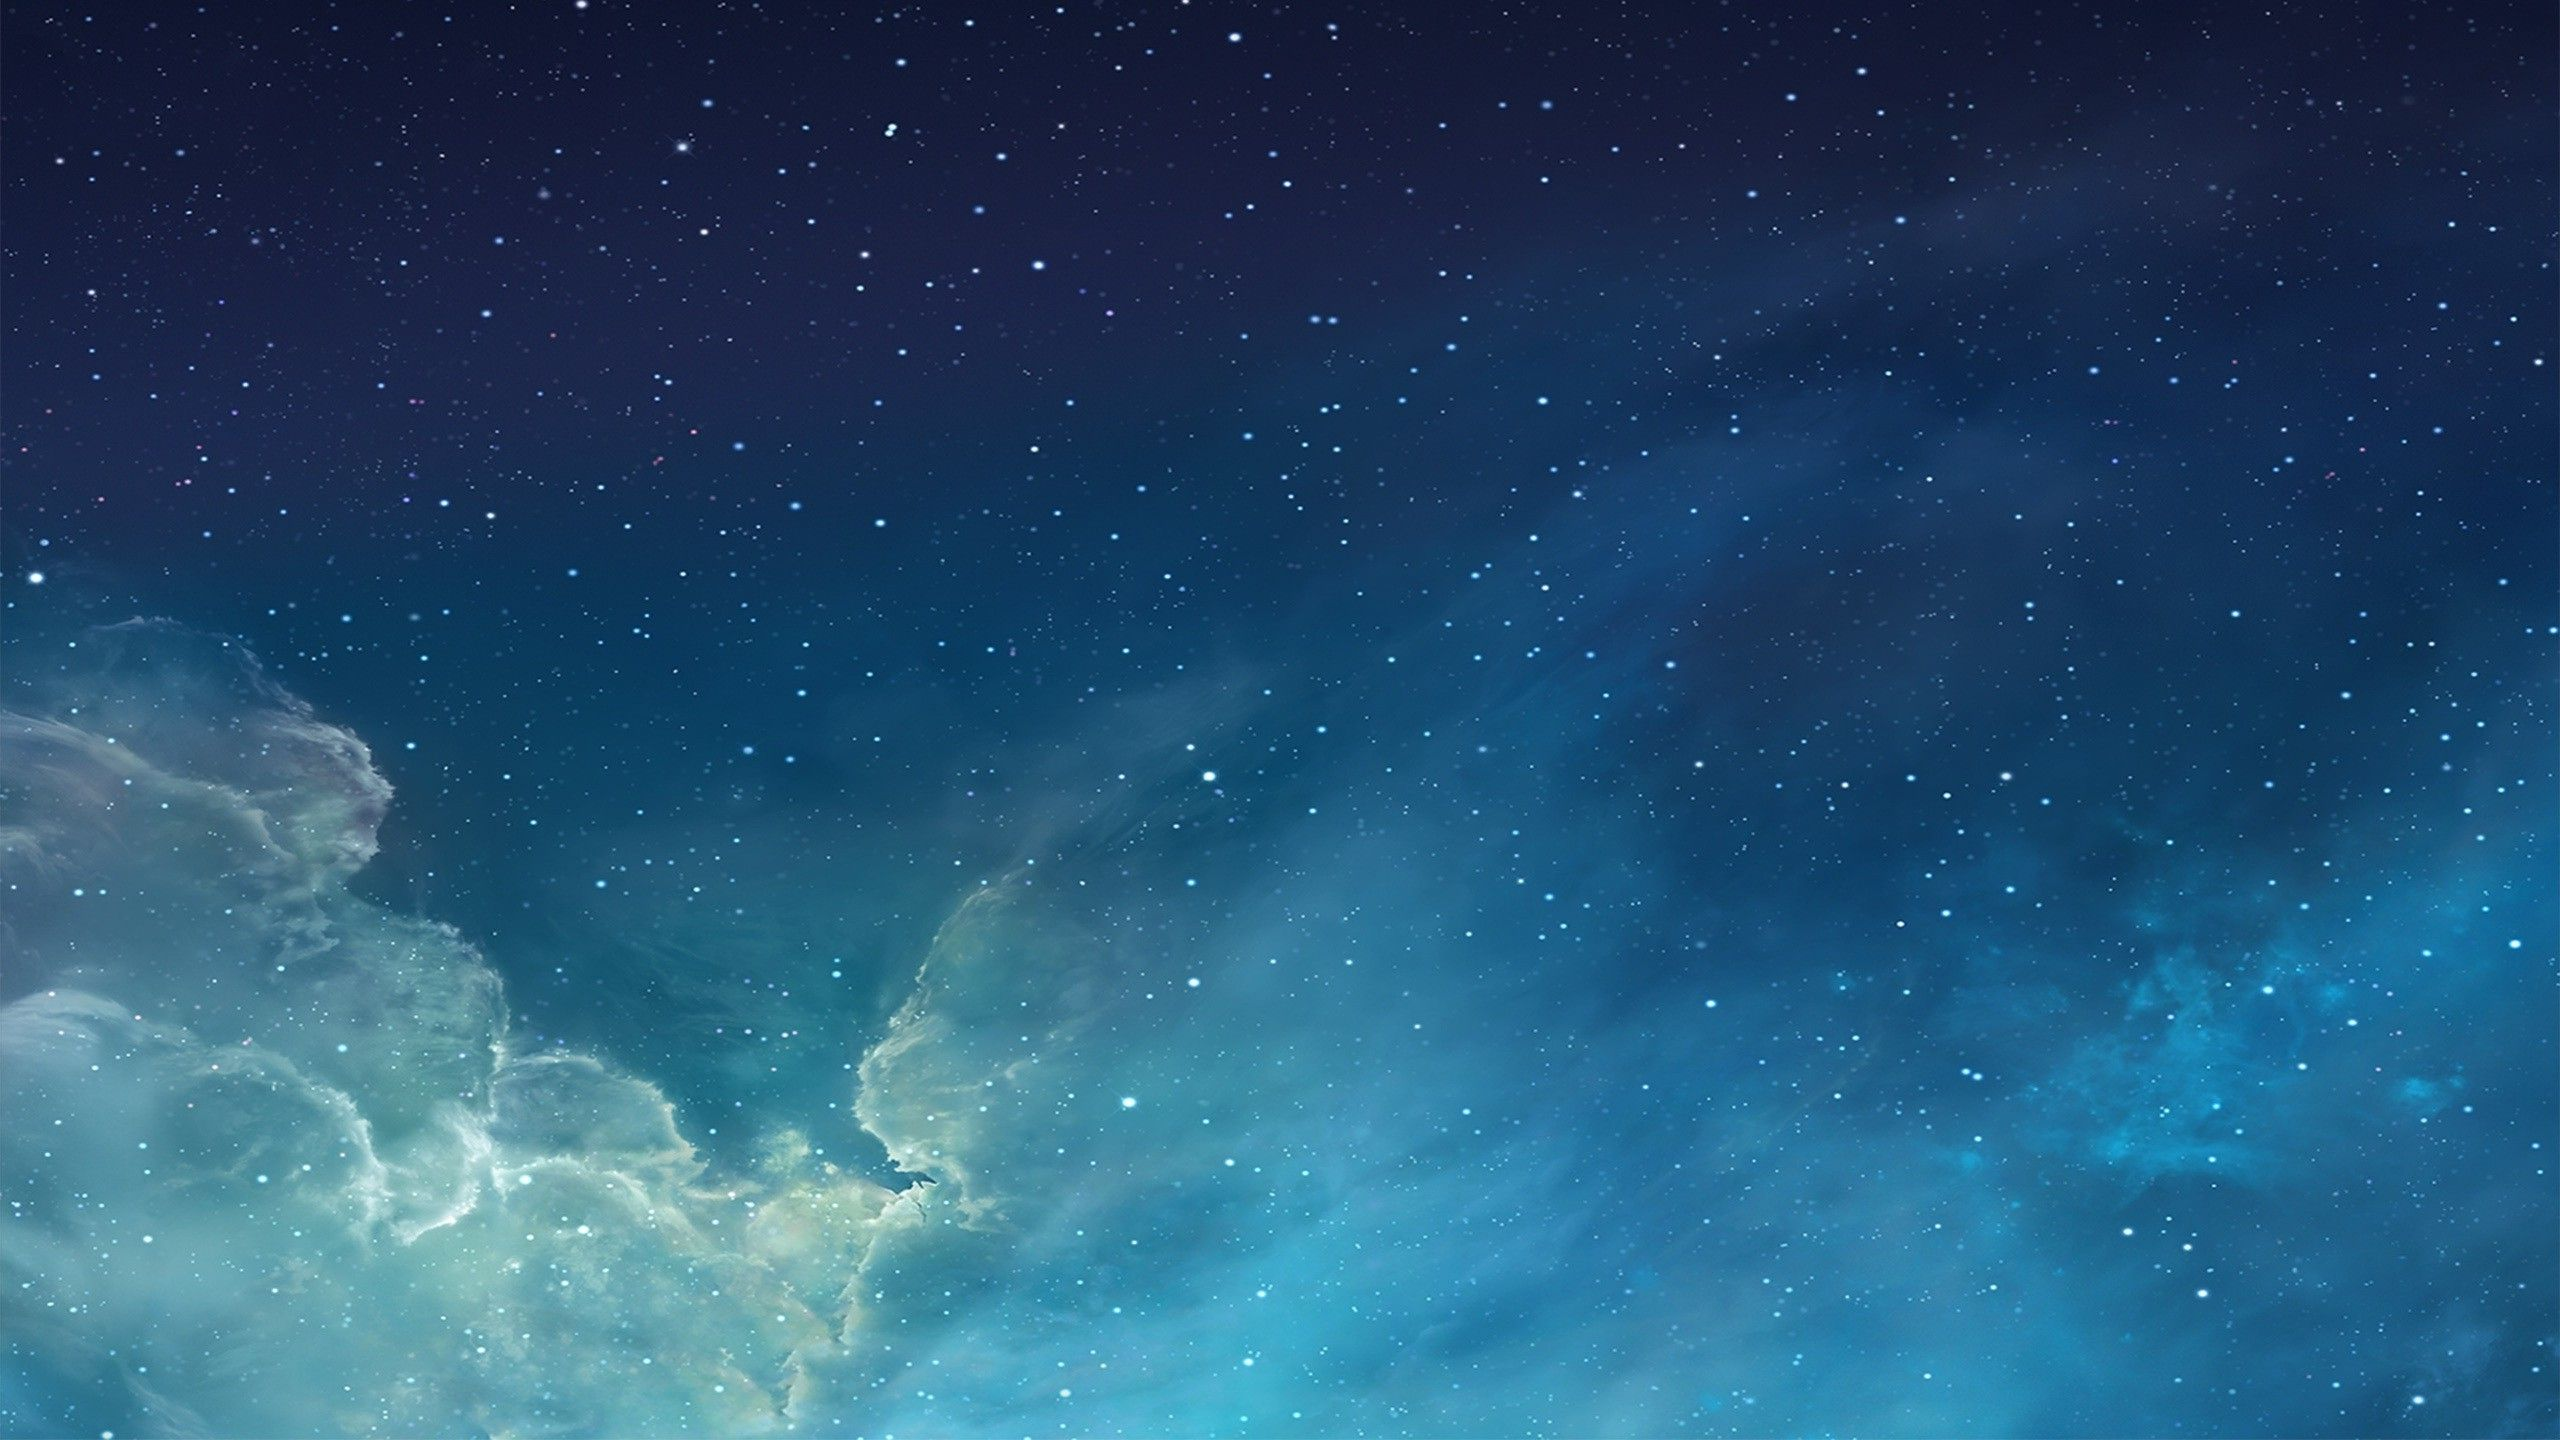 Sky With Stars Wallpaper